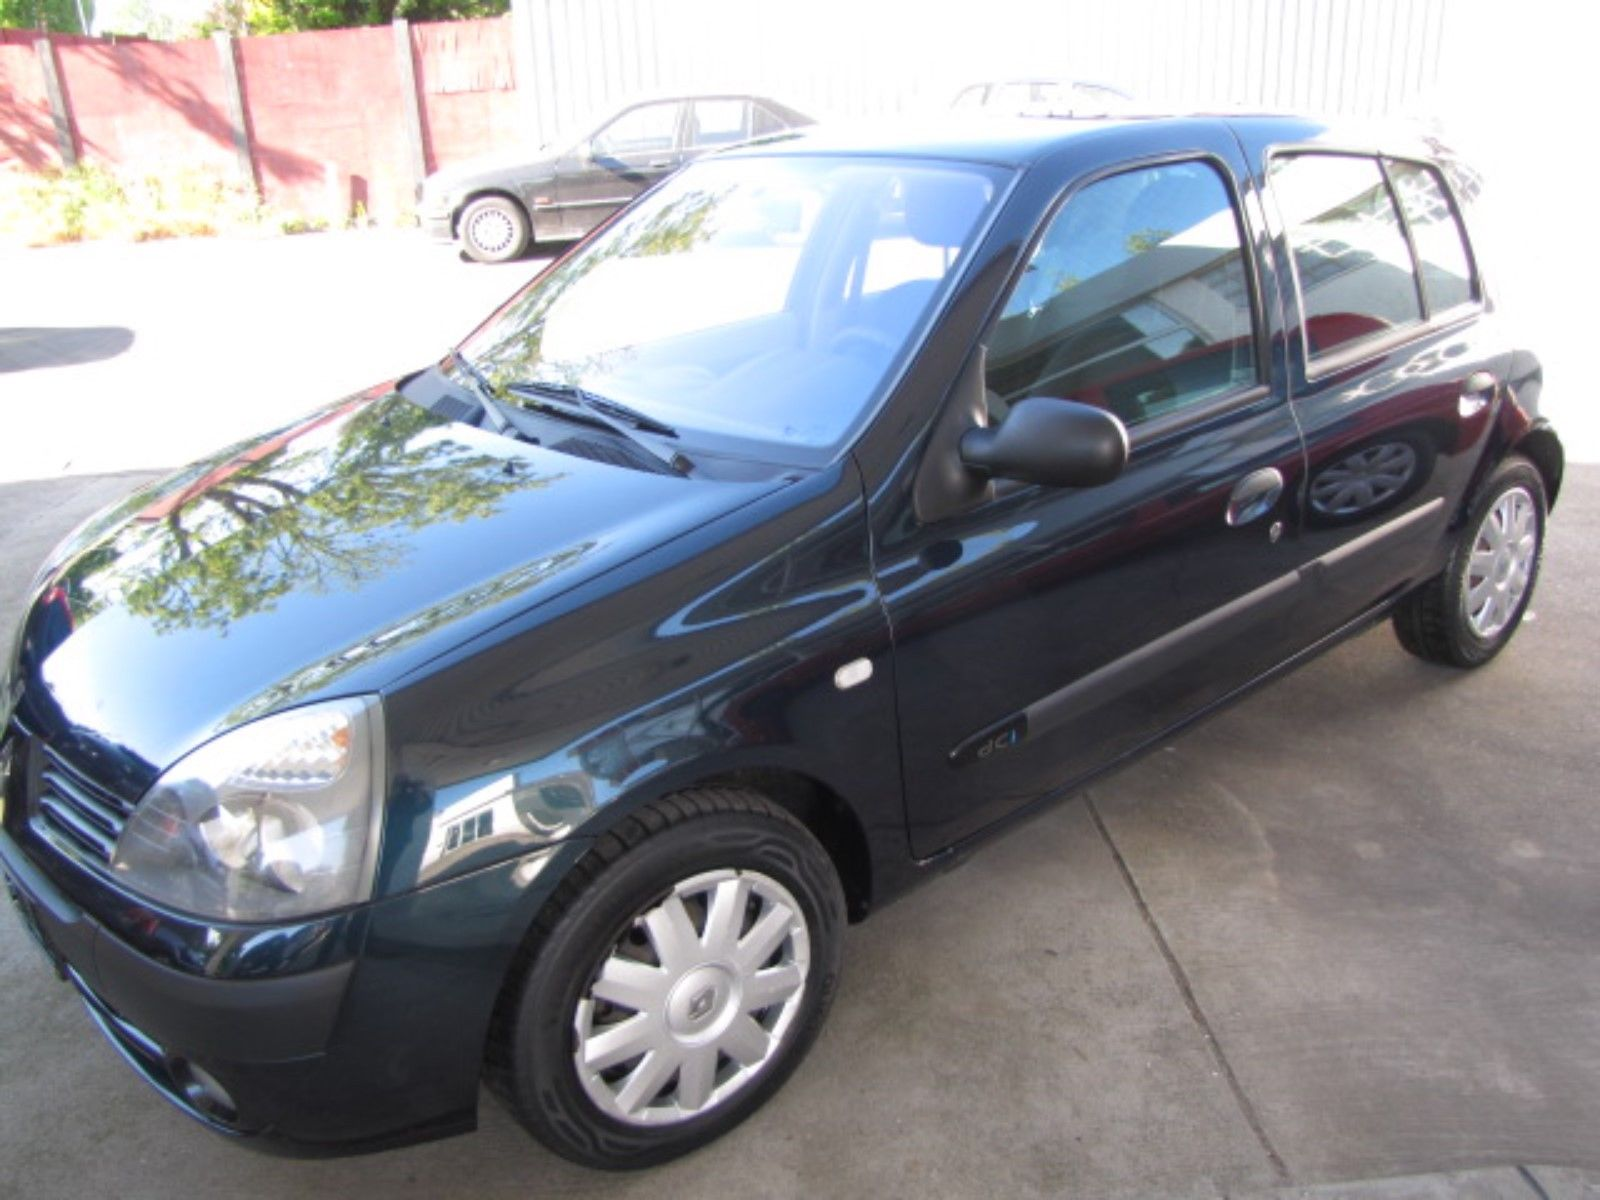 RENAULT Clio II 1.5 dci Emotion